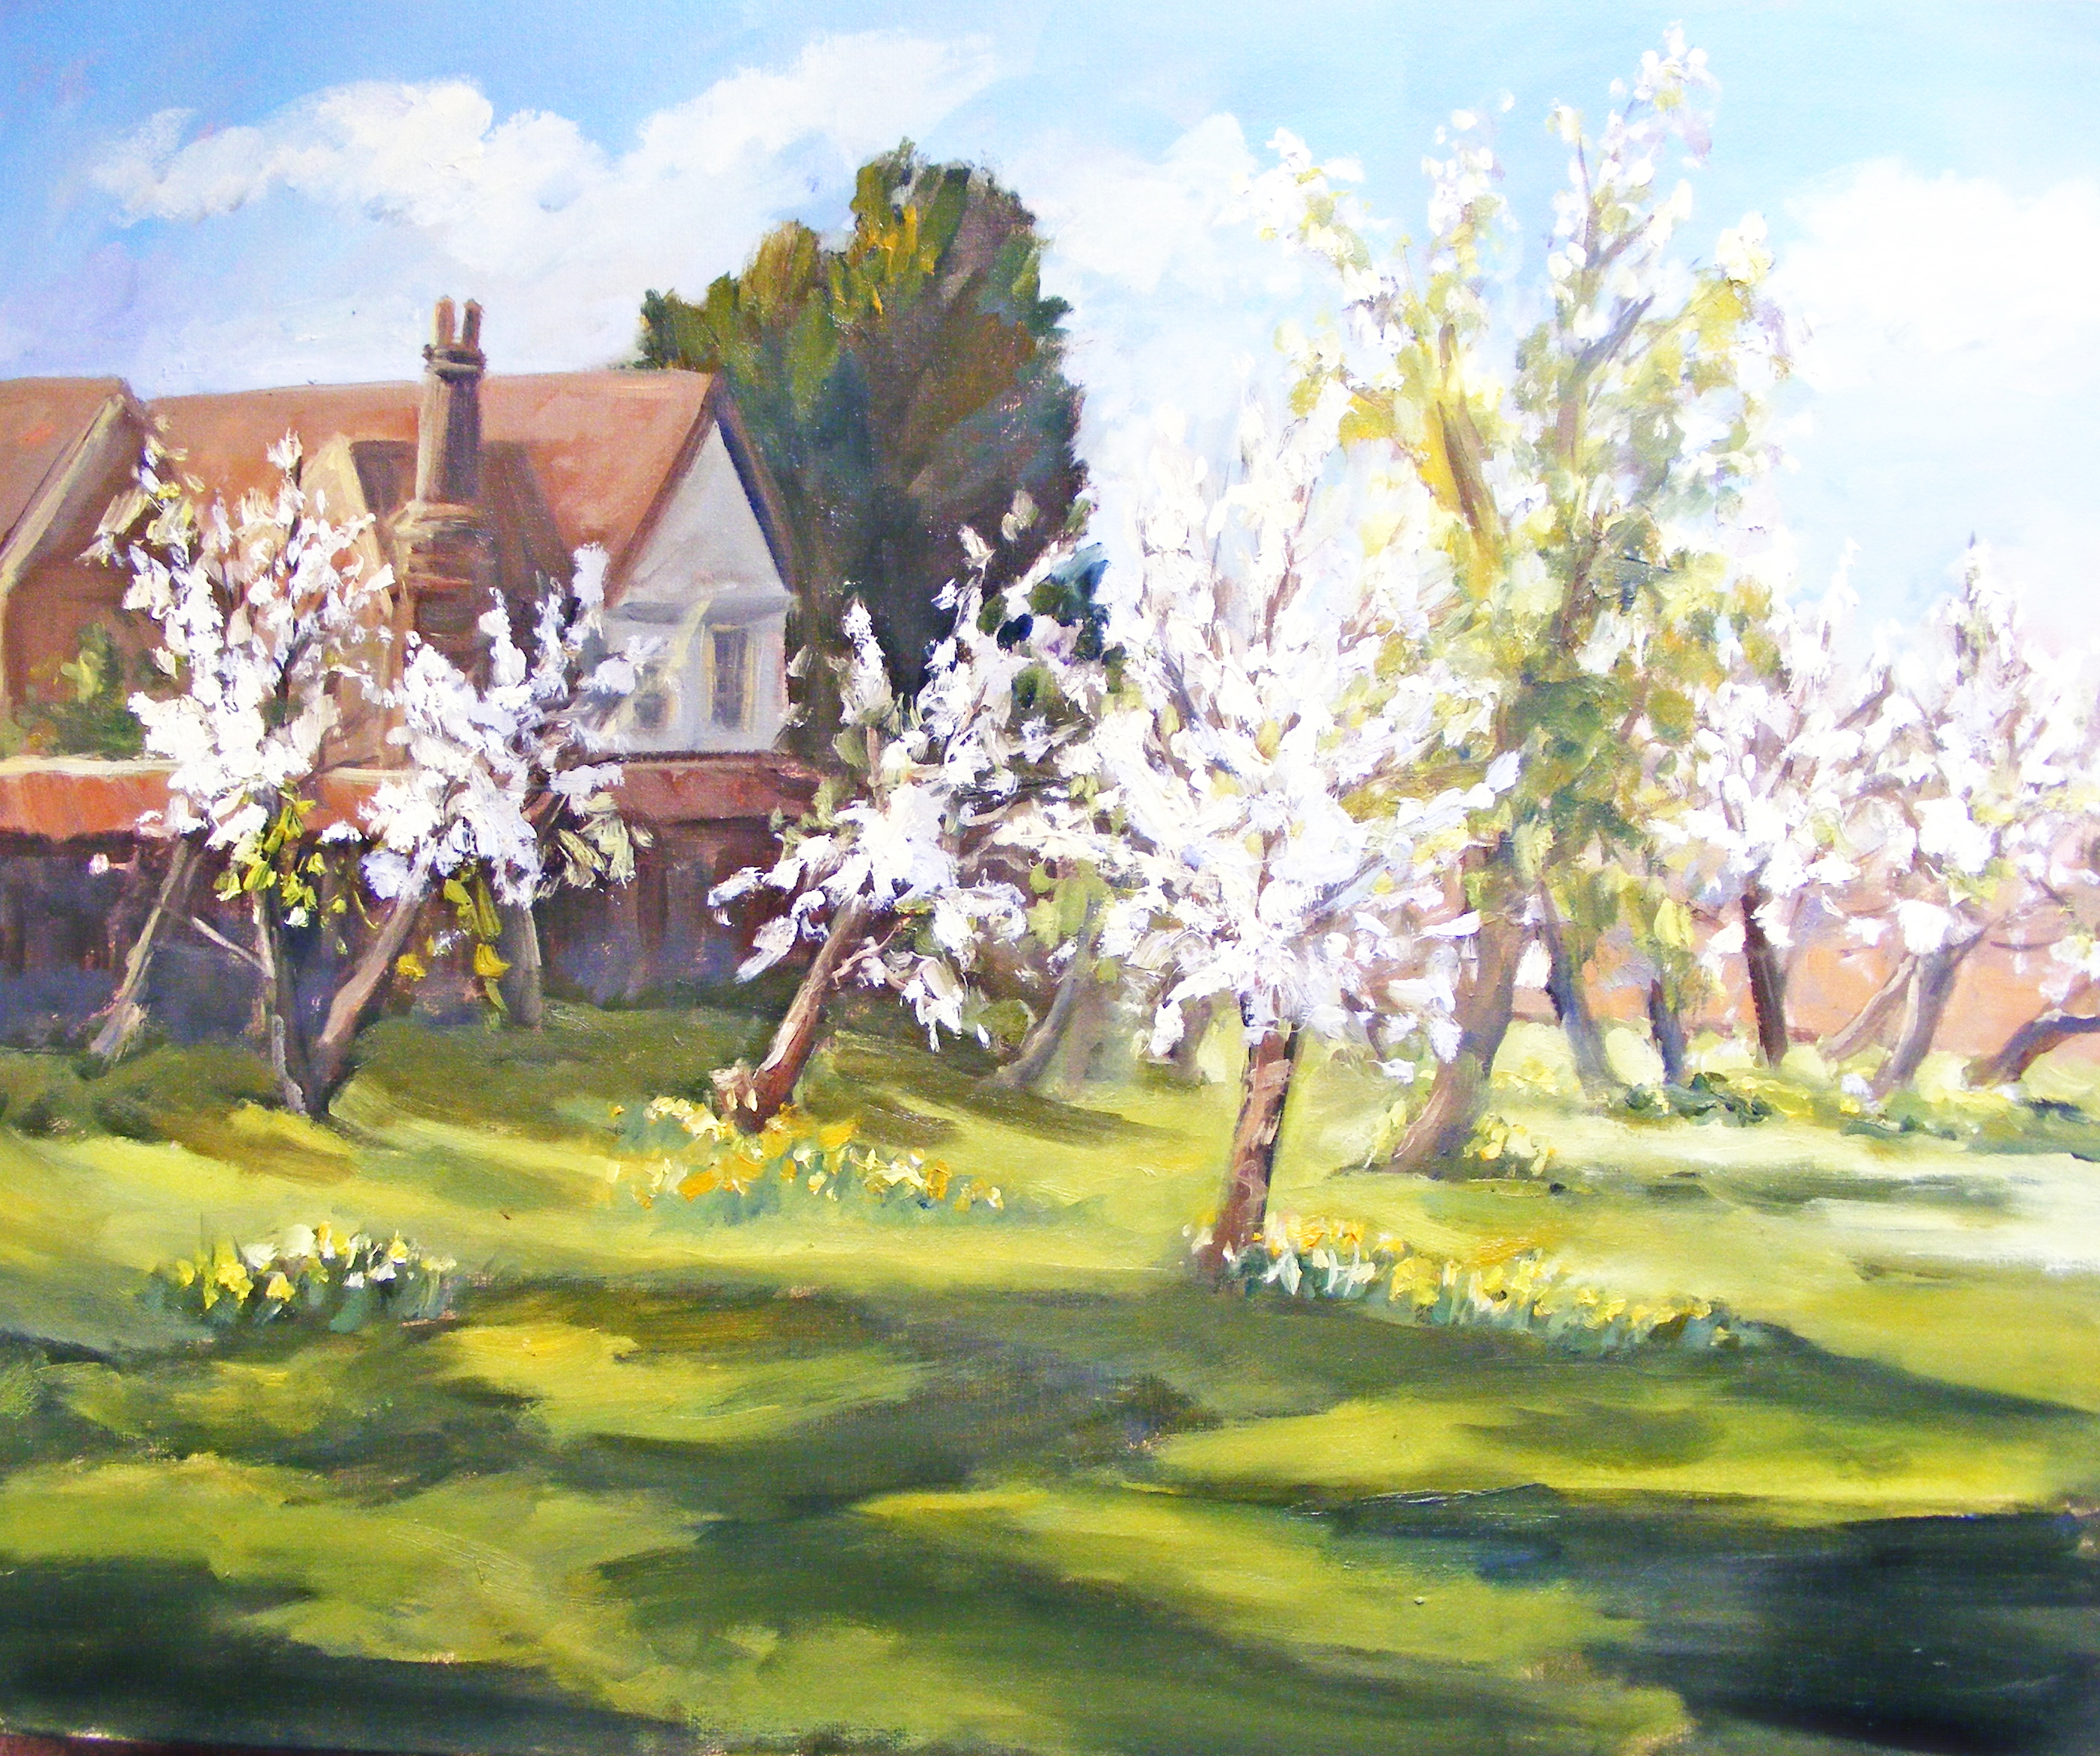 In The Orchard - £350